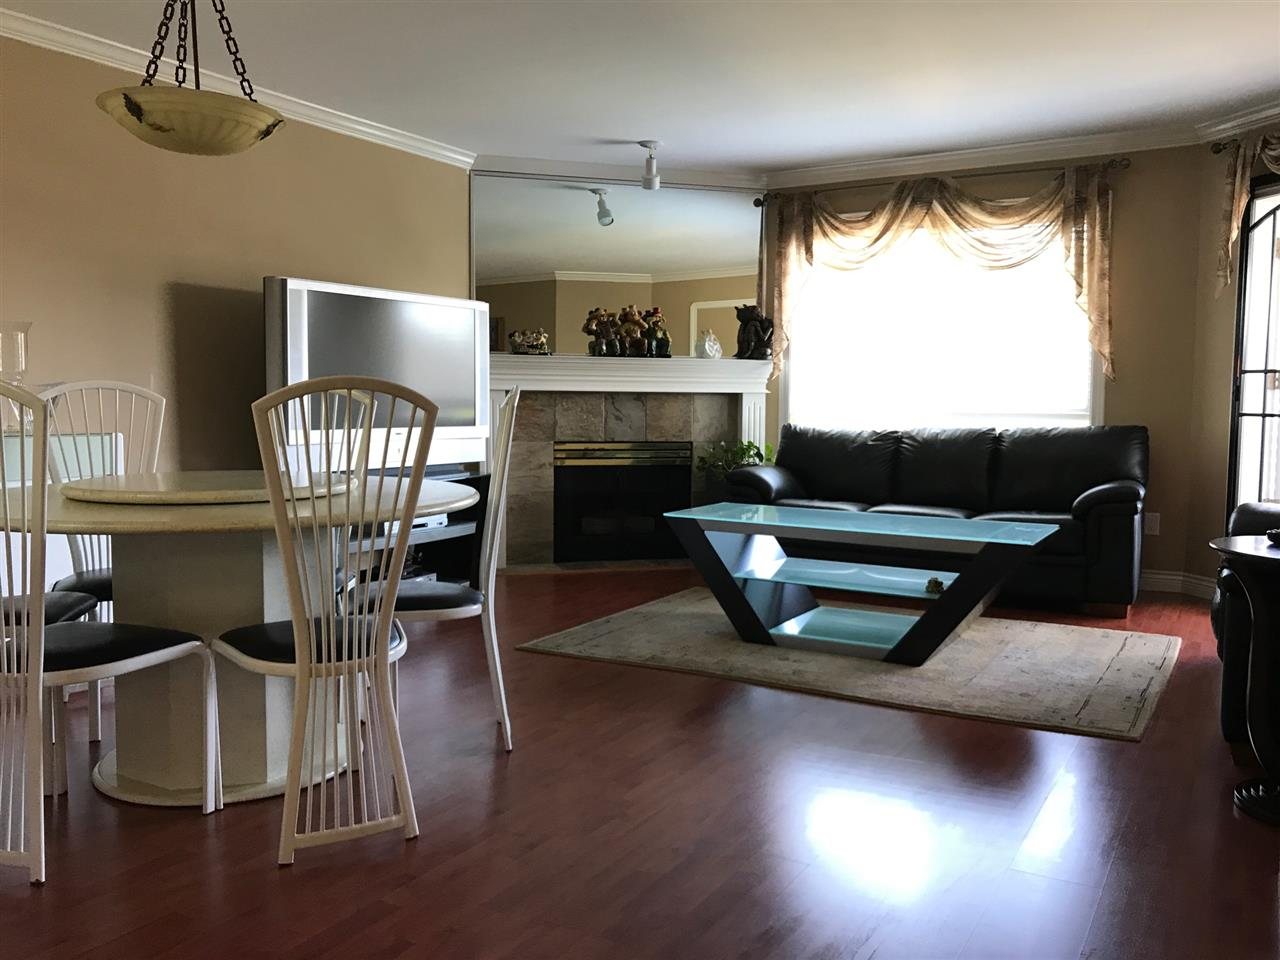 Condo Apartment at 305 13680 84 AVENUE, Unit 305, Surrey, British Columbia. Image 1